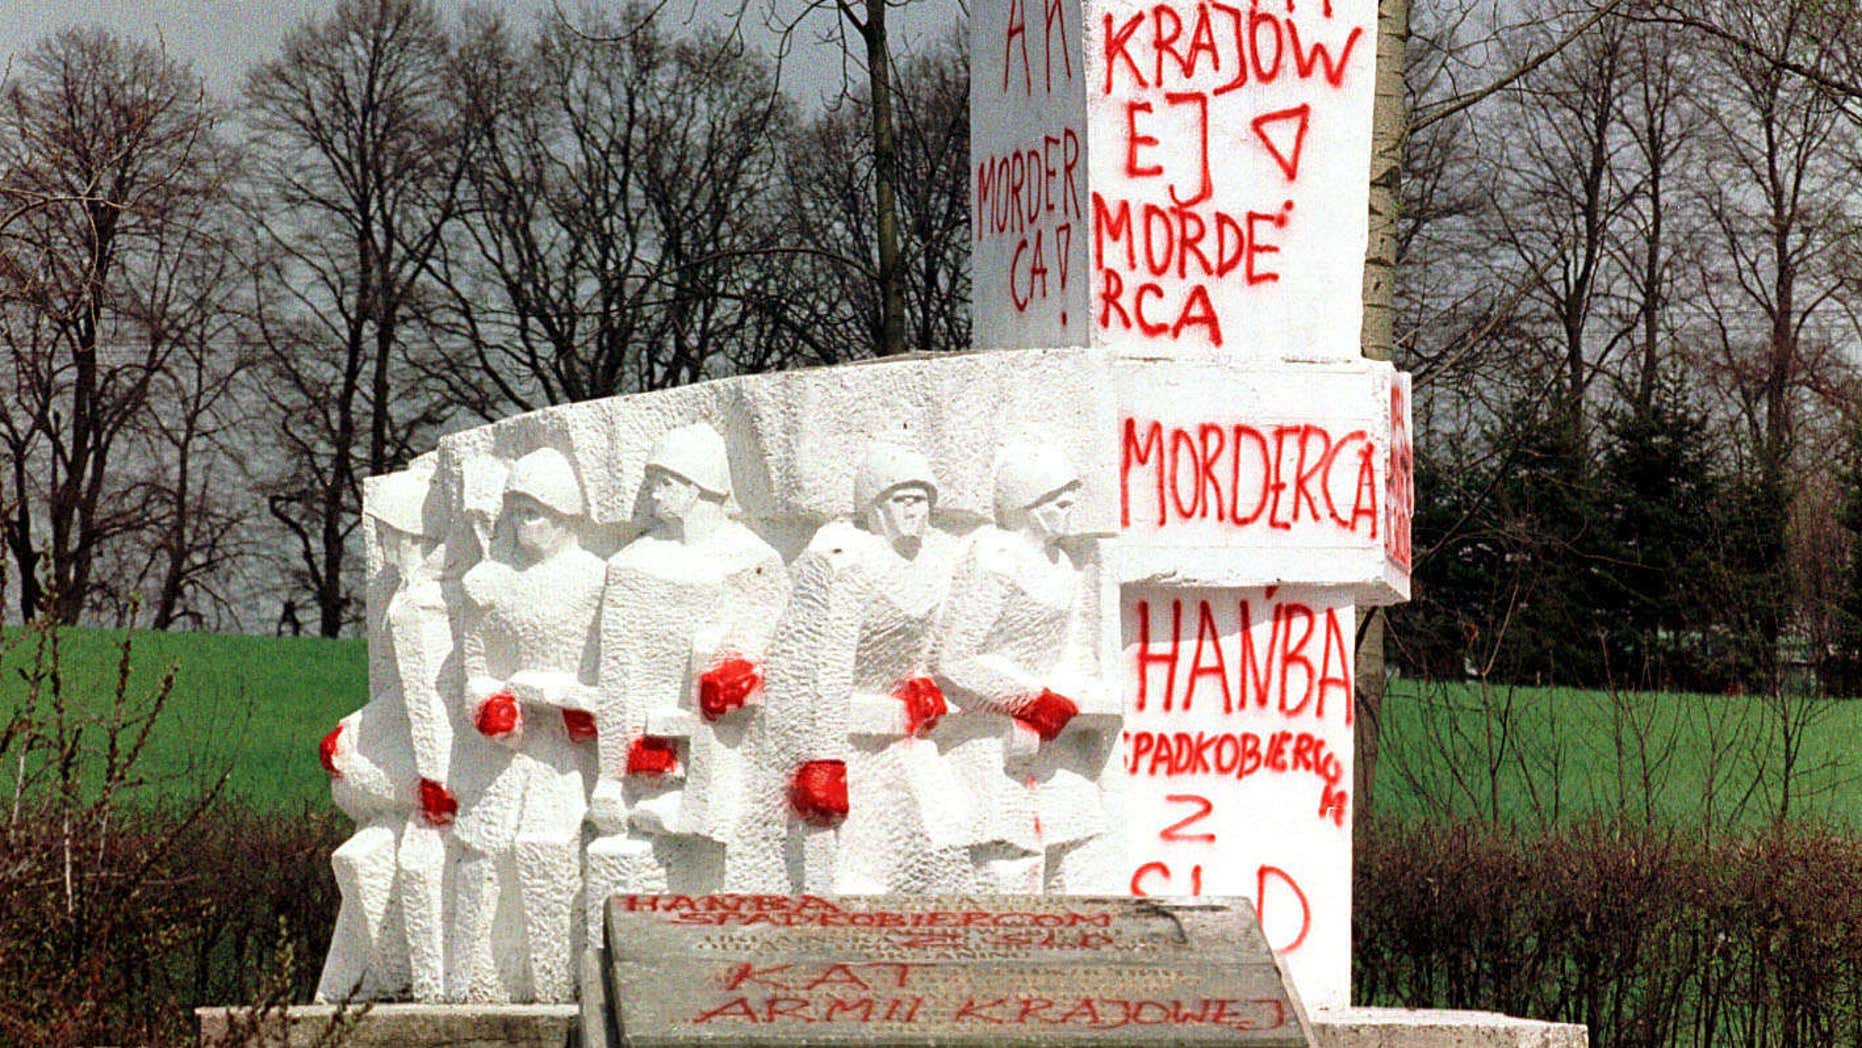 "FILE- In this April 30, 2001 file photo taken in Pieniezno, Poland, graffiti with insults like ""Murderer"" and ""Shame"" can be seen on a memorial to Soviet General Ivan Chernyakhovsky, who is considered a symbol of the imposition of communism in Poland, but a national hero in Russia."